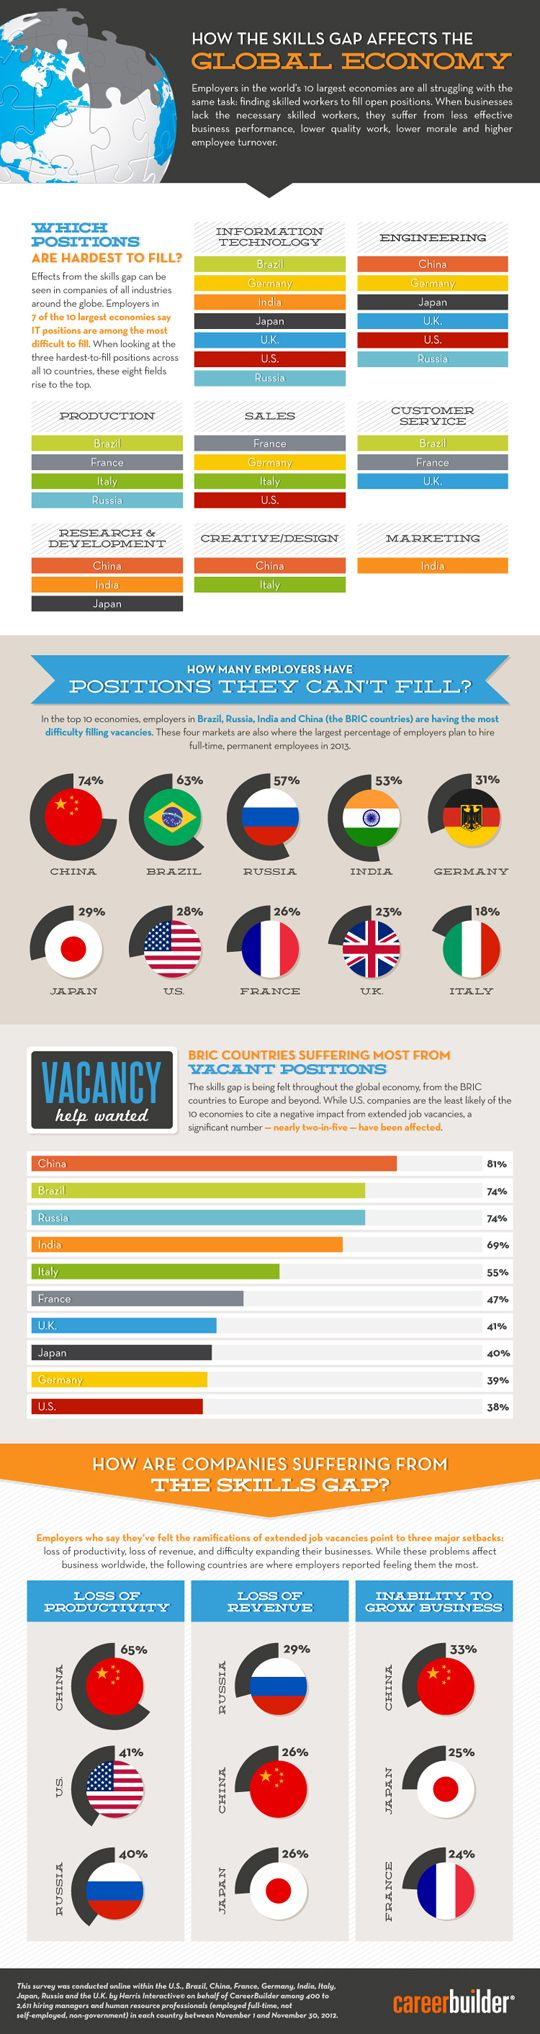 MSN Careers - Infographic: Skills gap impacting employers across the globe - Career Advice Article